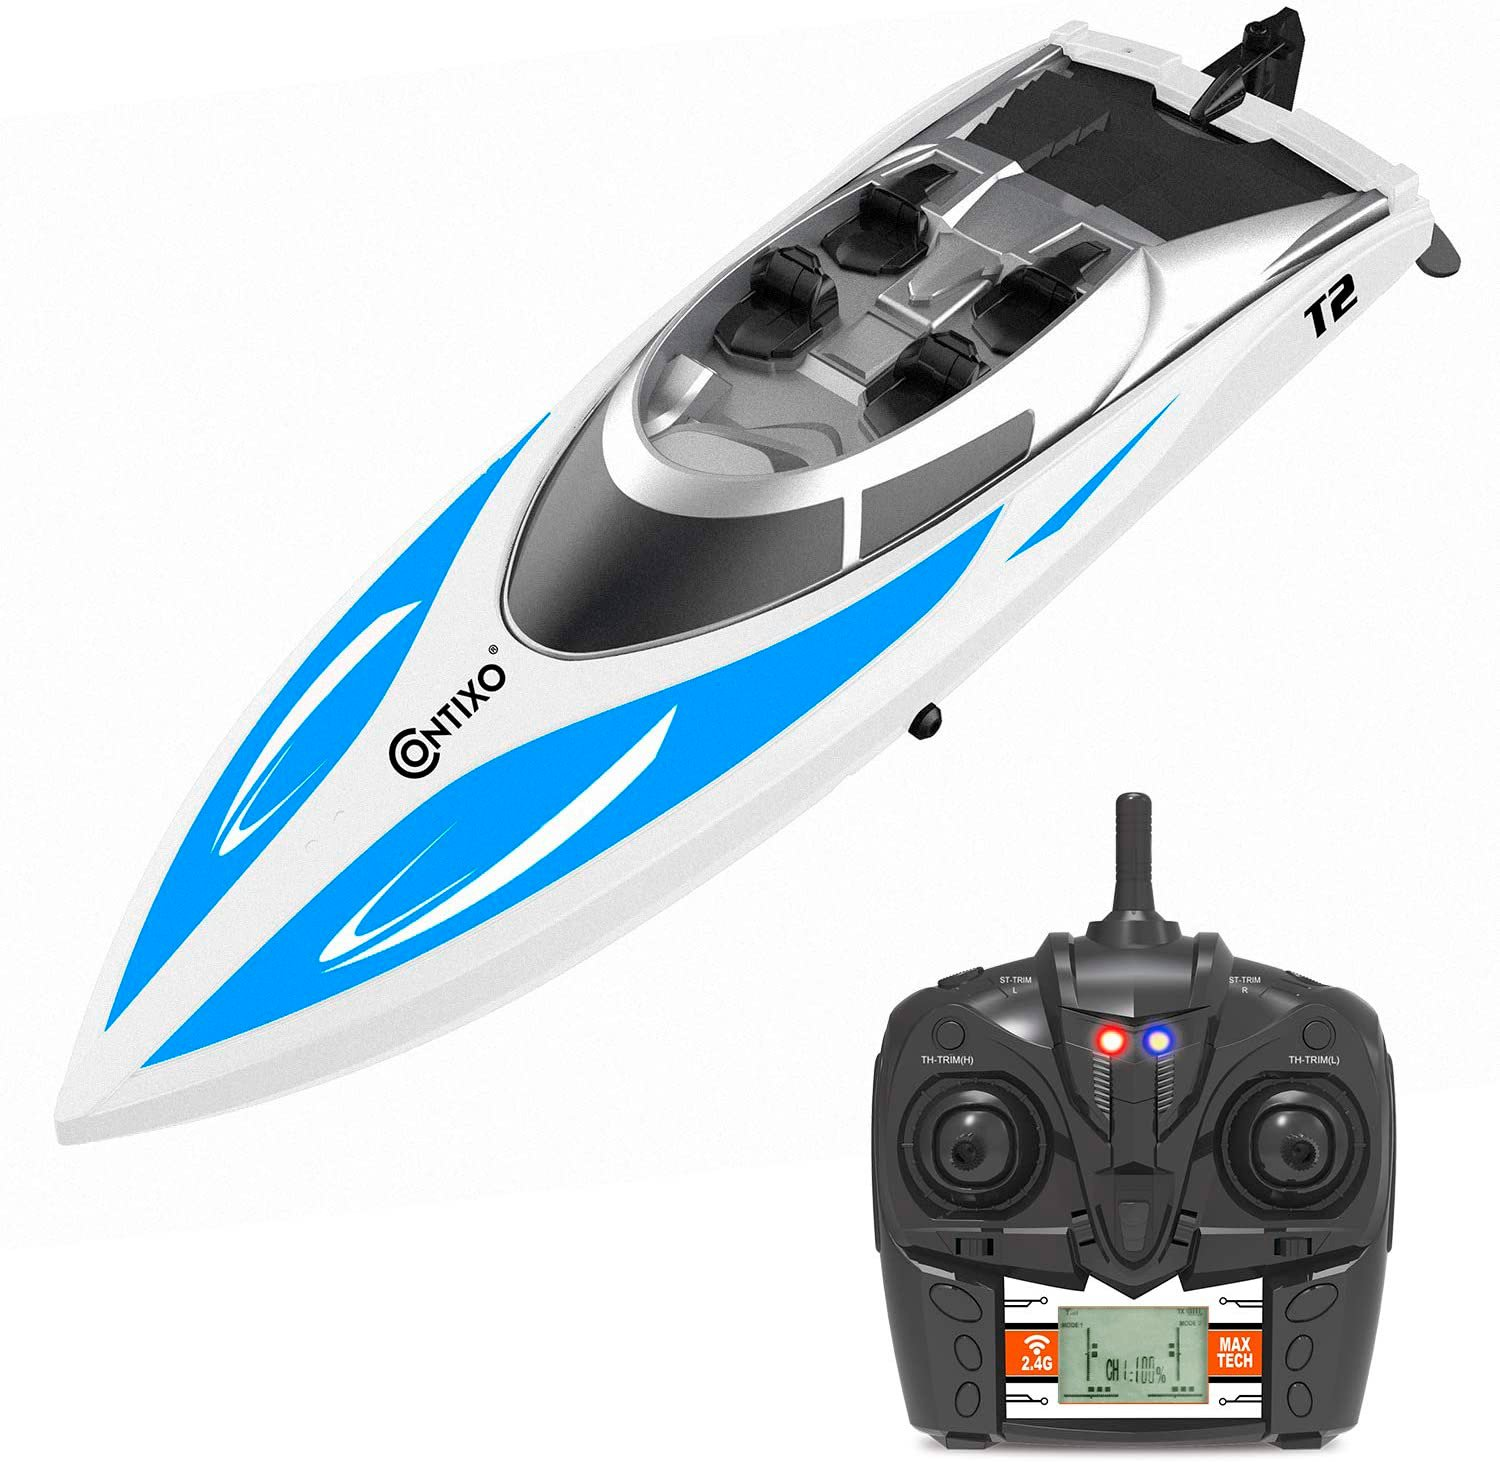 Contixo T2 RC Boat review